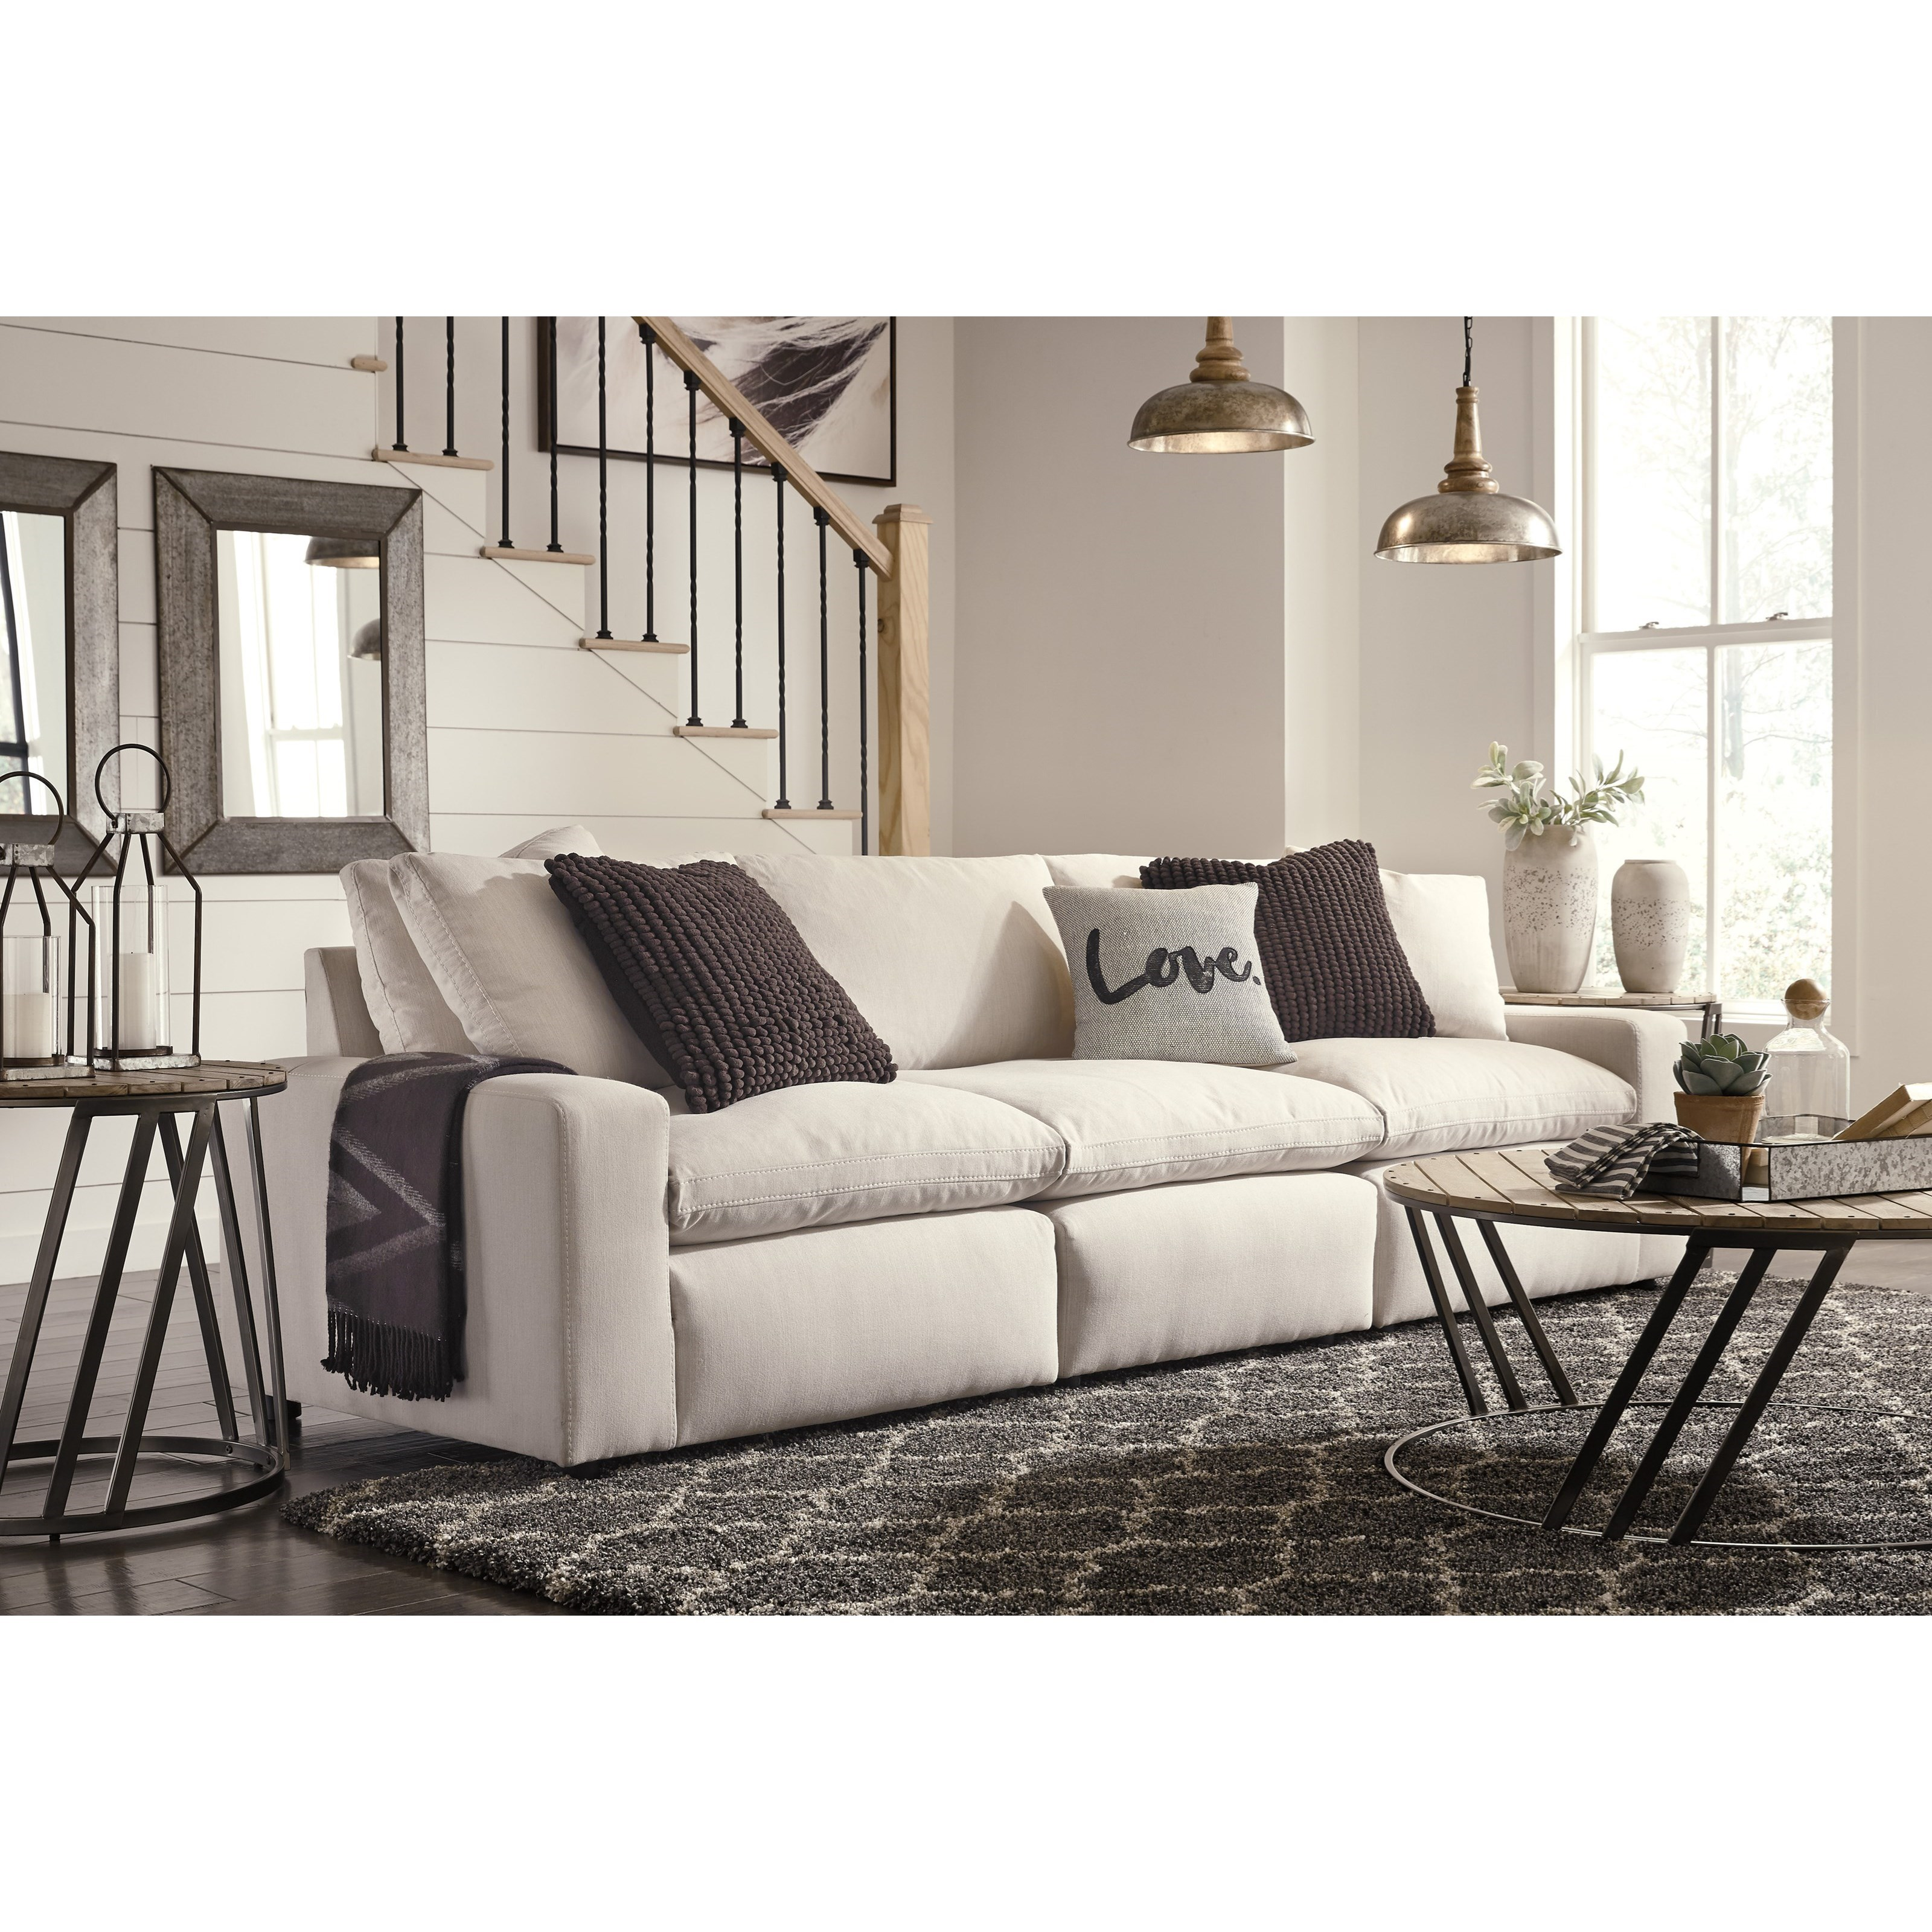 Savesto Sofa by Signature Design by Ashley at HomeWorld Furniture